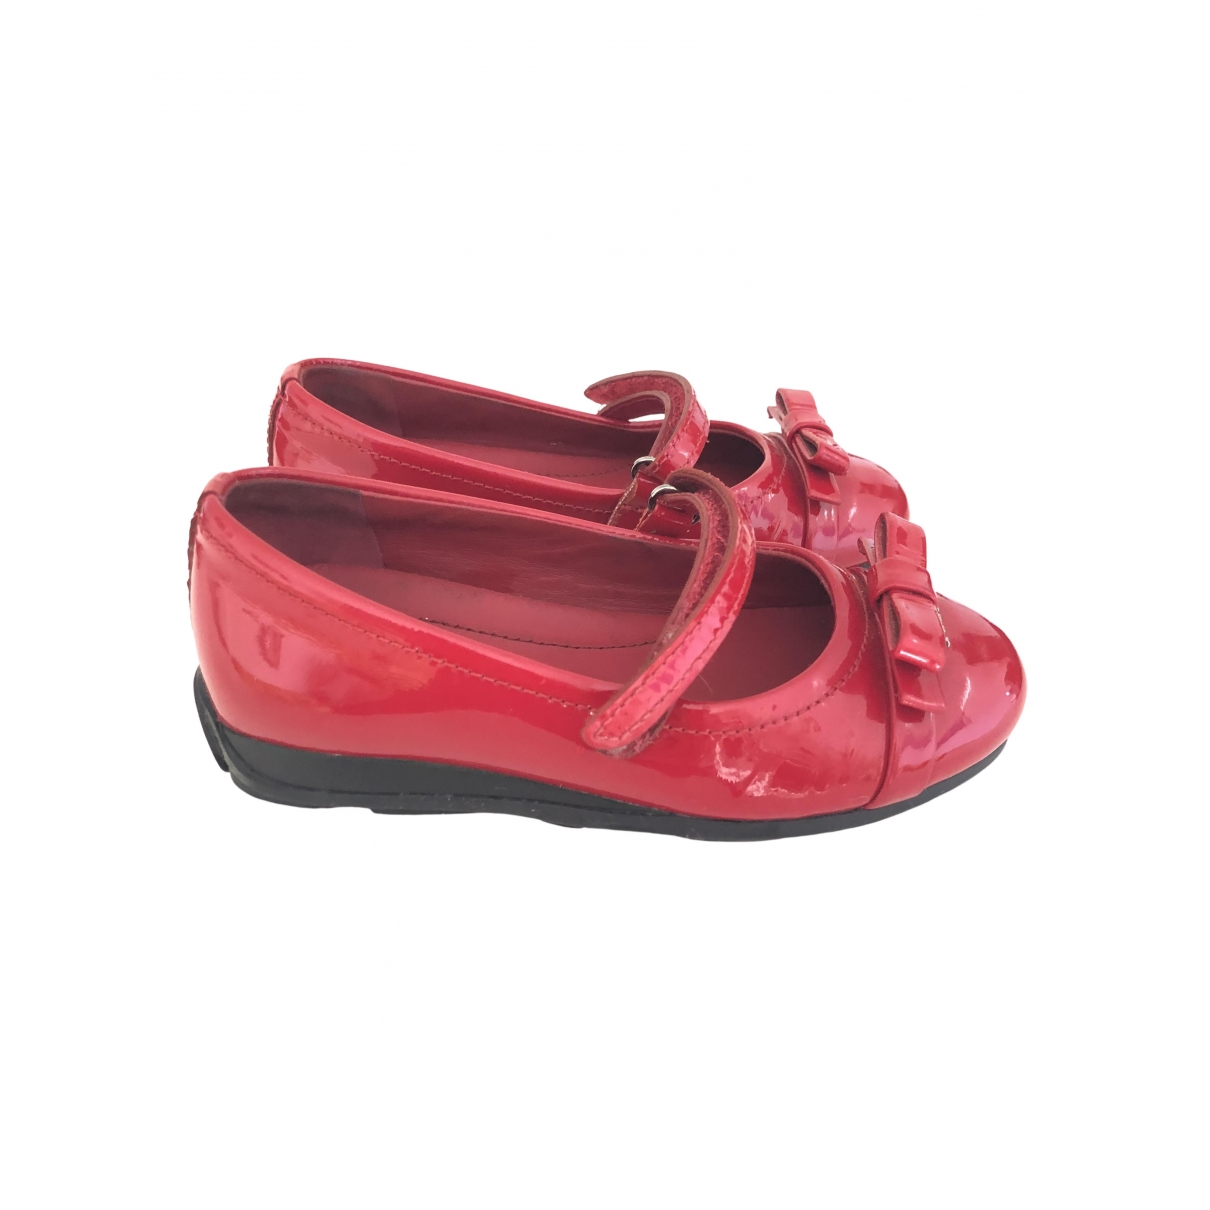 Prada \N Red Patent leather Ballet flats for Kids 24 EU